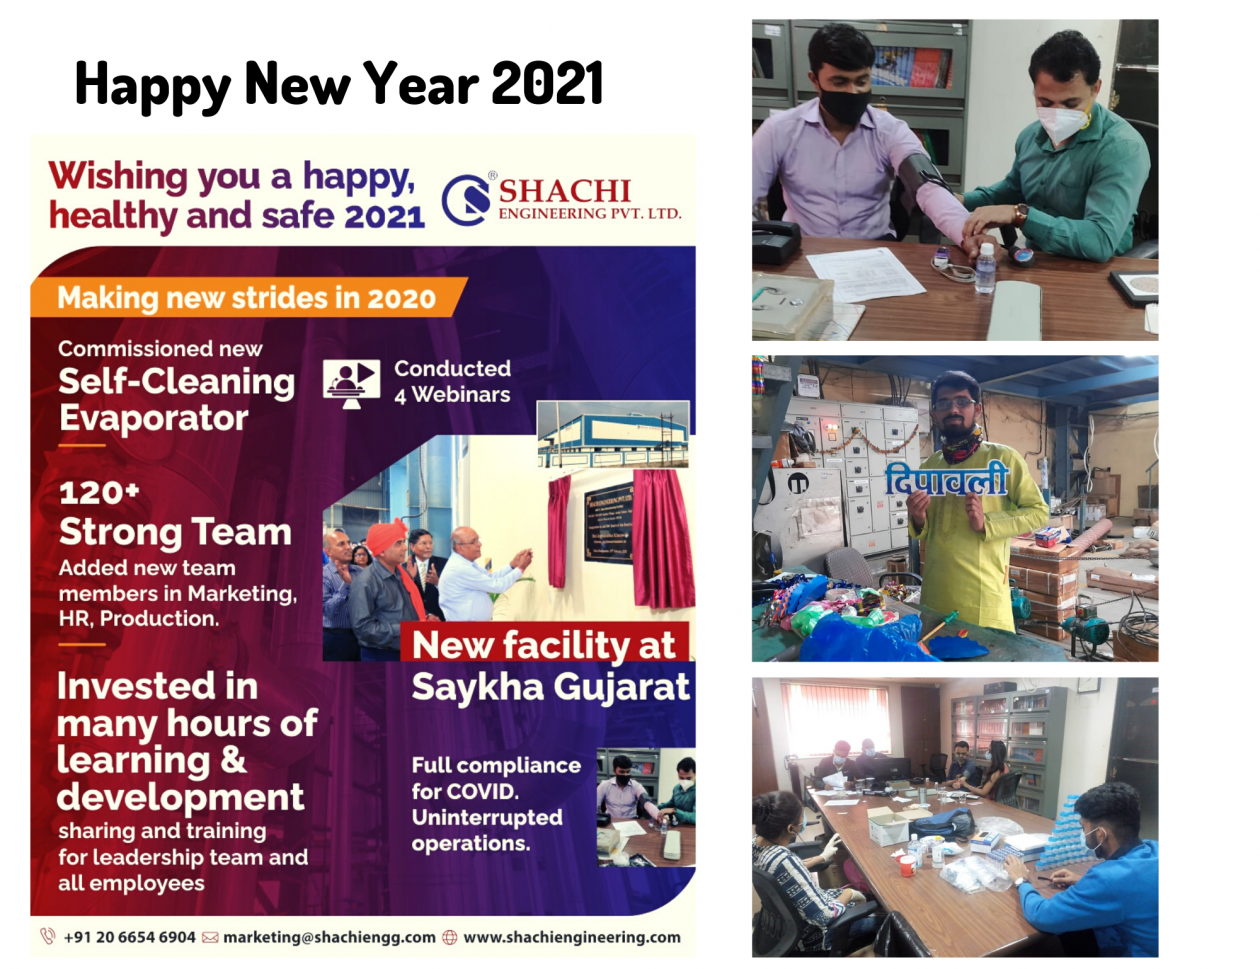 Shachi wish you a very happy new year